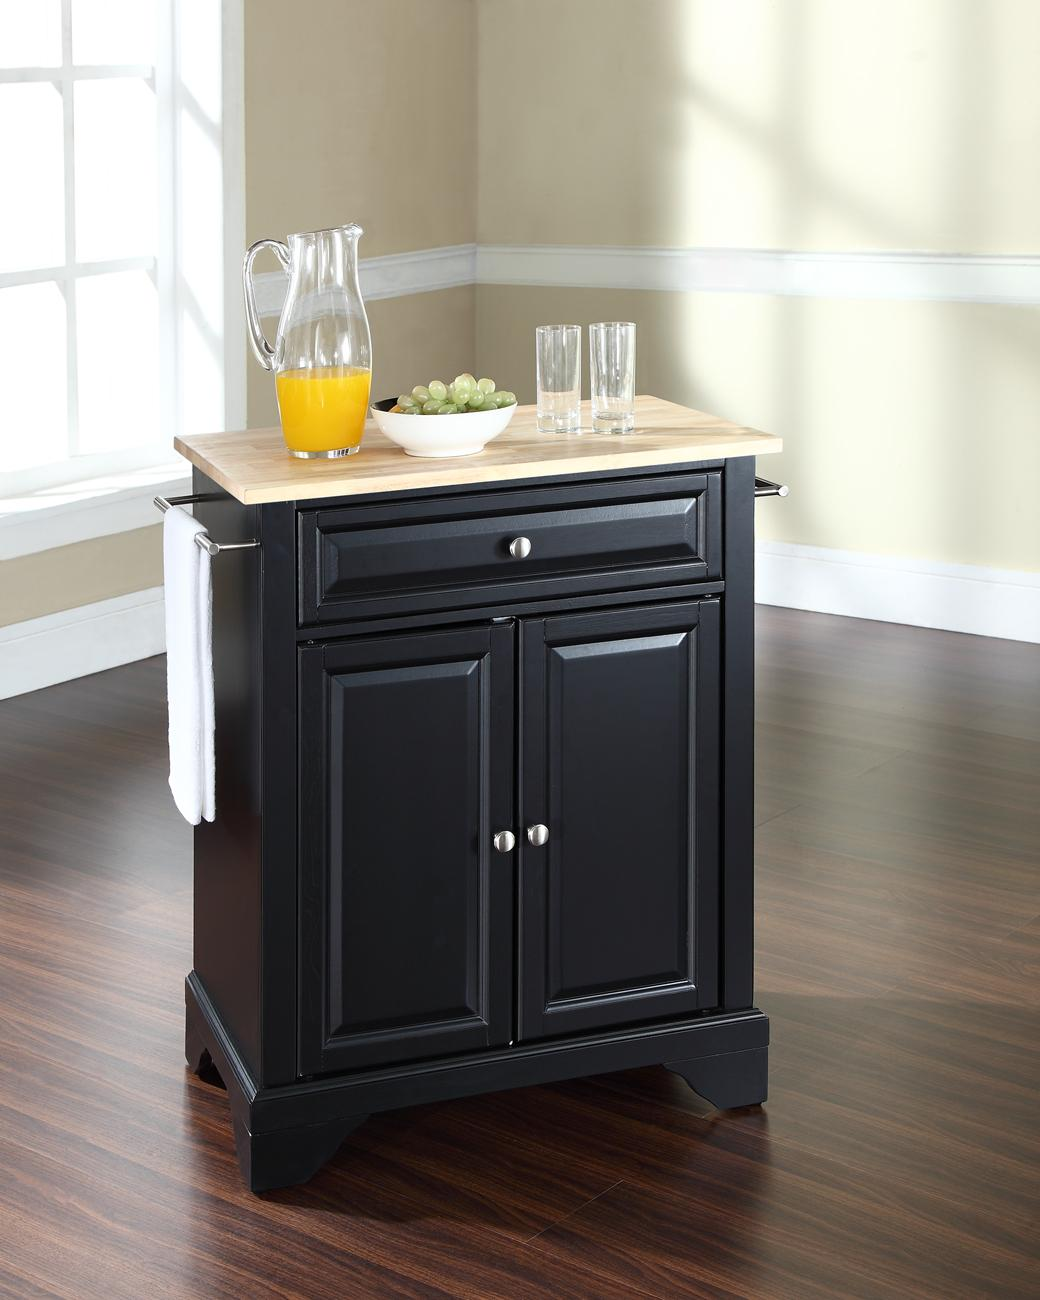 Crosley LaFayette Portable Kitchen Island by OJ merce